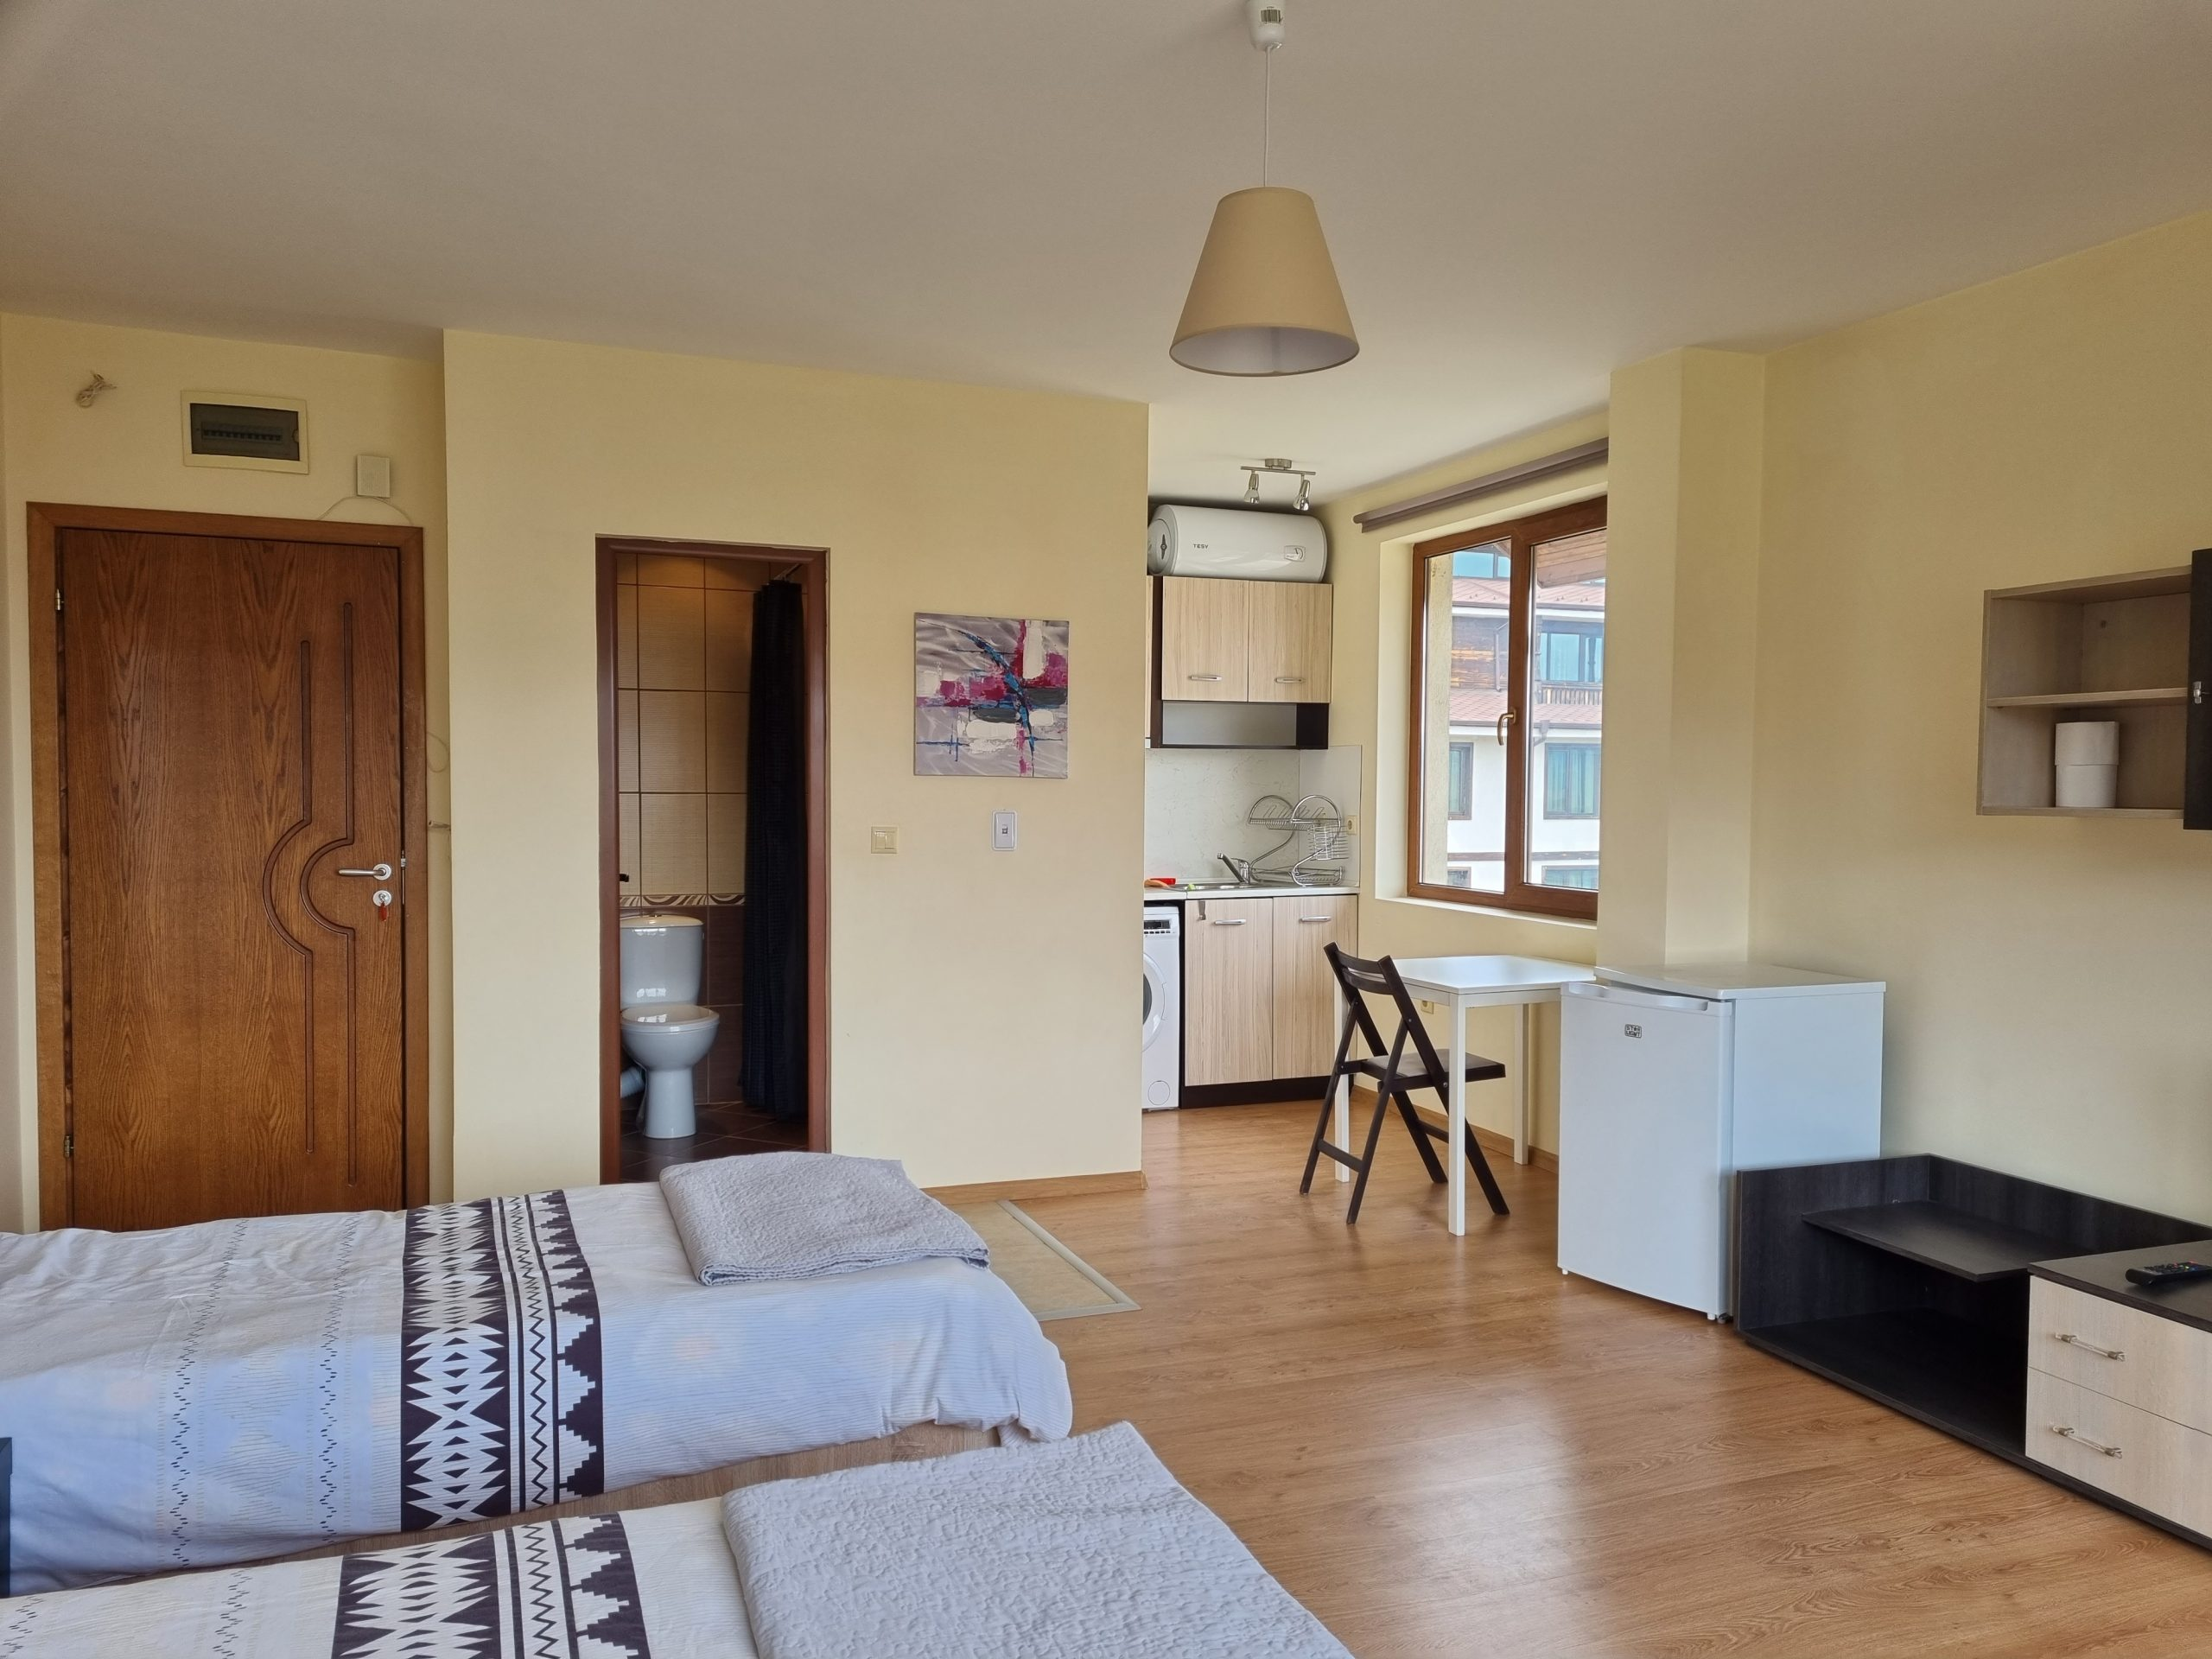 Good size studio for sale in residential building